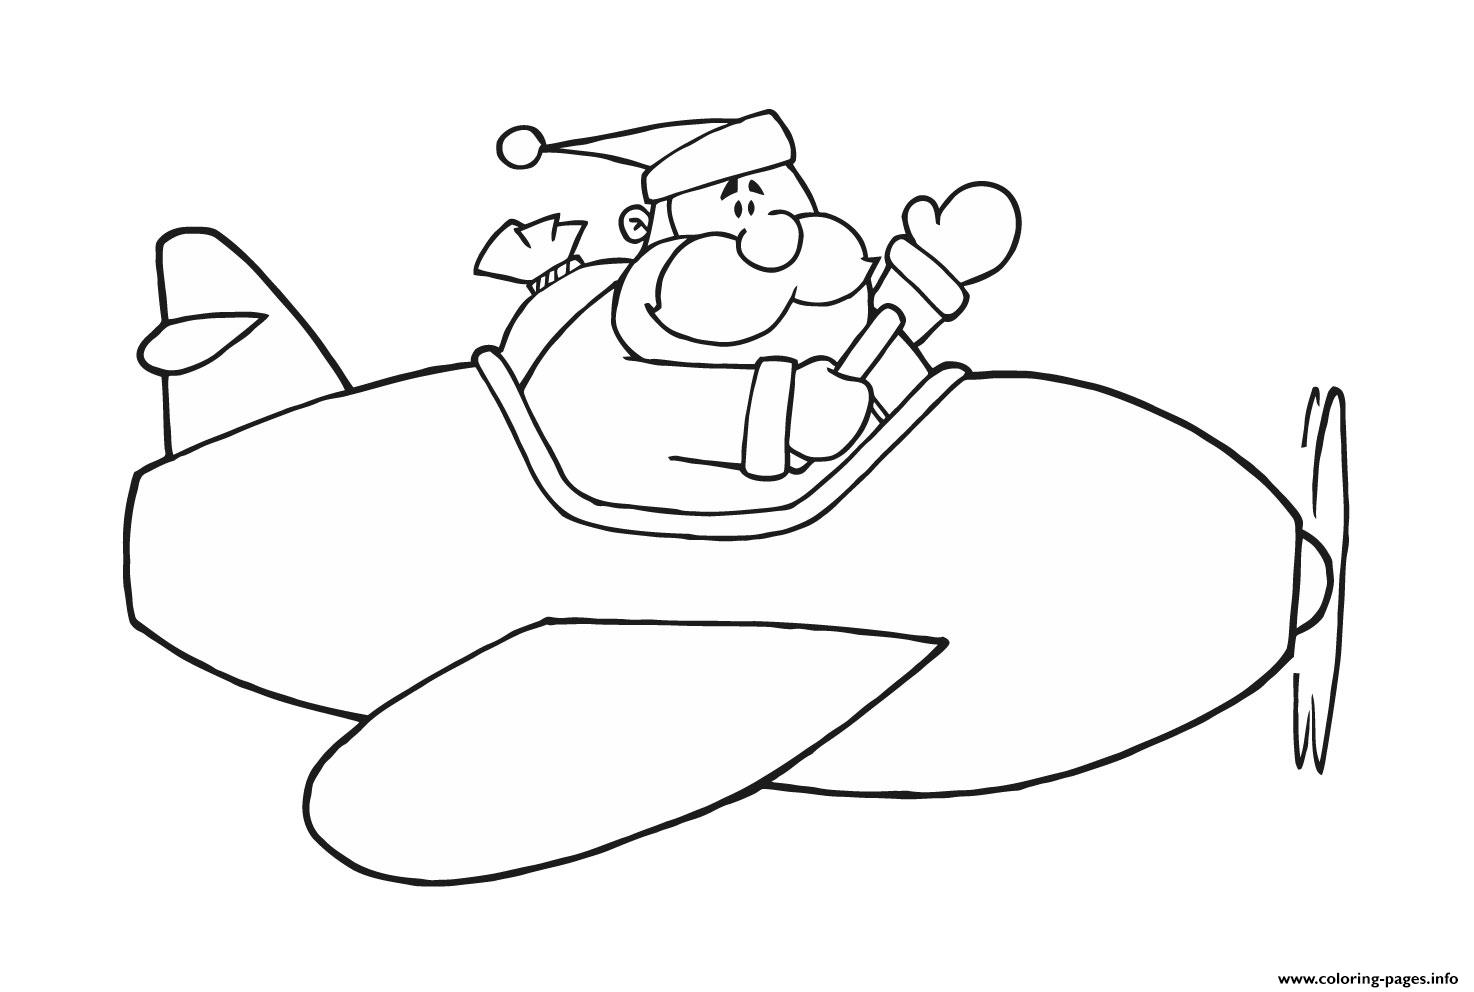 Santa Coloring Pages For Preschoolers With Preschool S Airplane And Santa46ec Printable